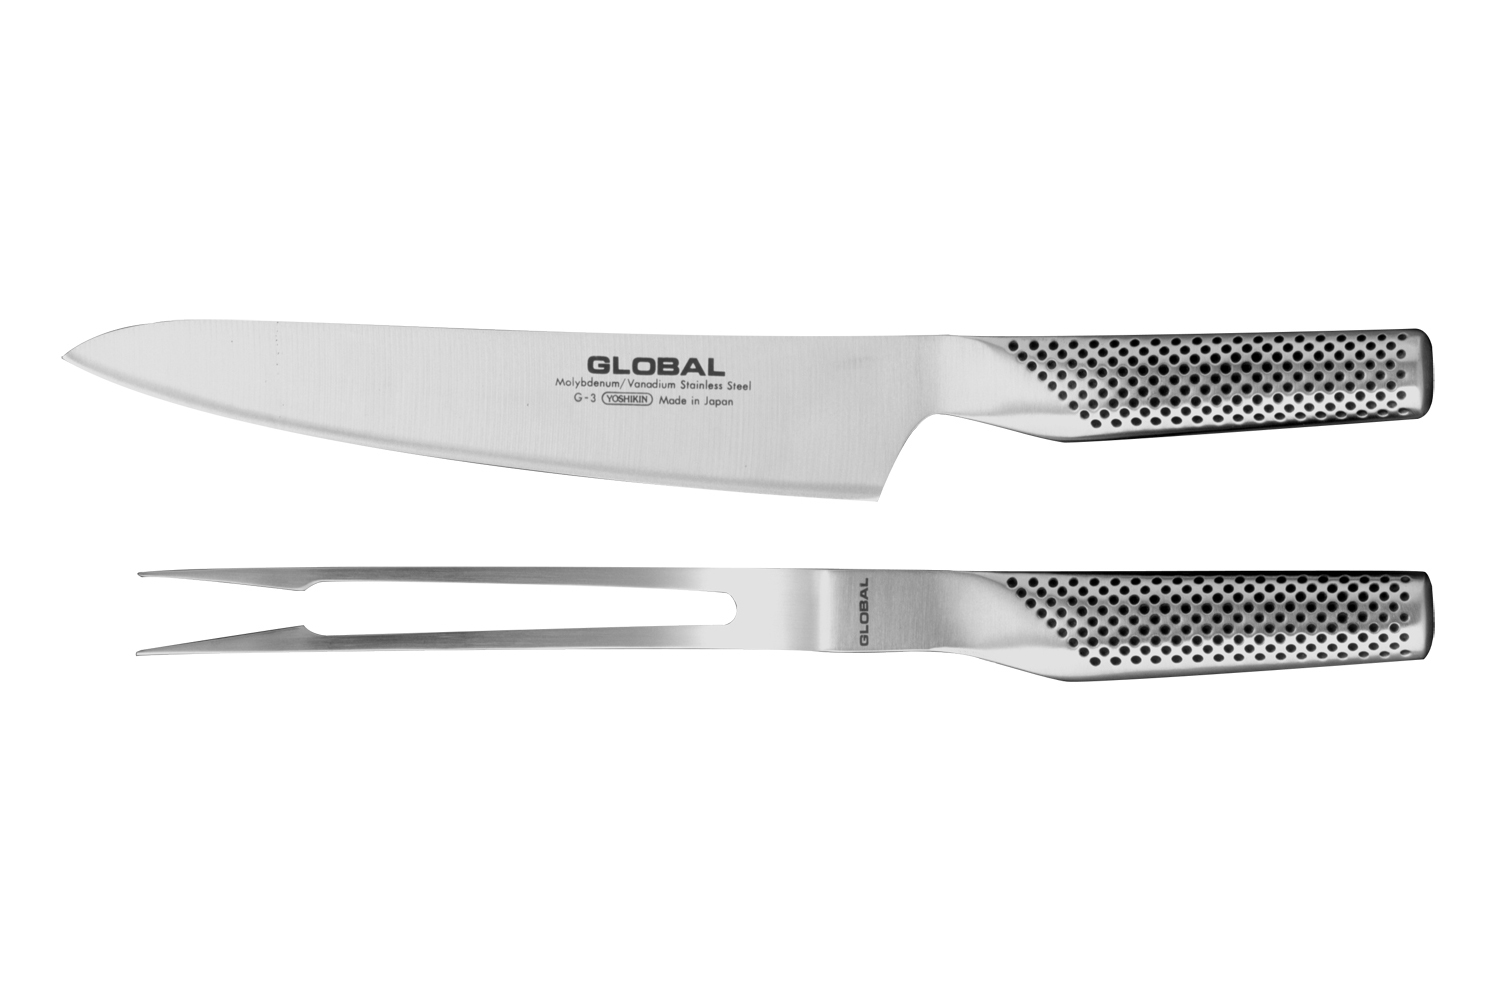 Global 2 Piece Carving Knife Set w/Curved Carving Fork